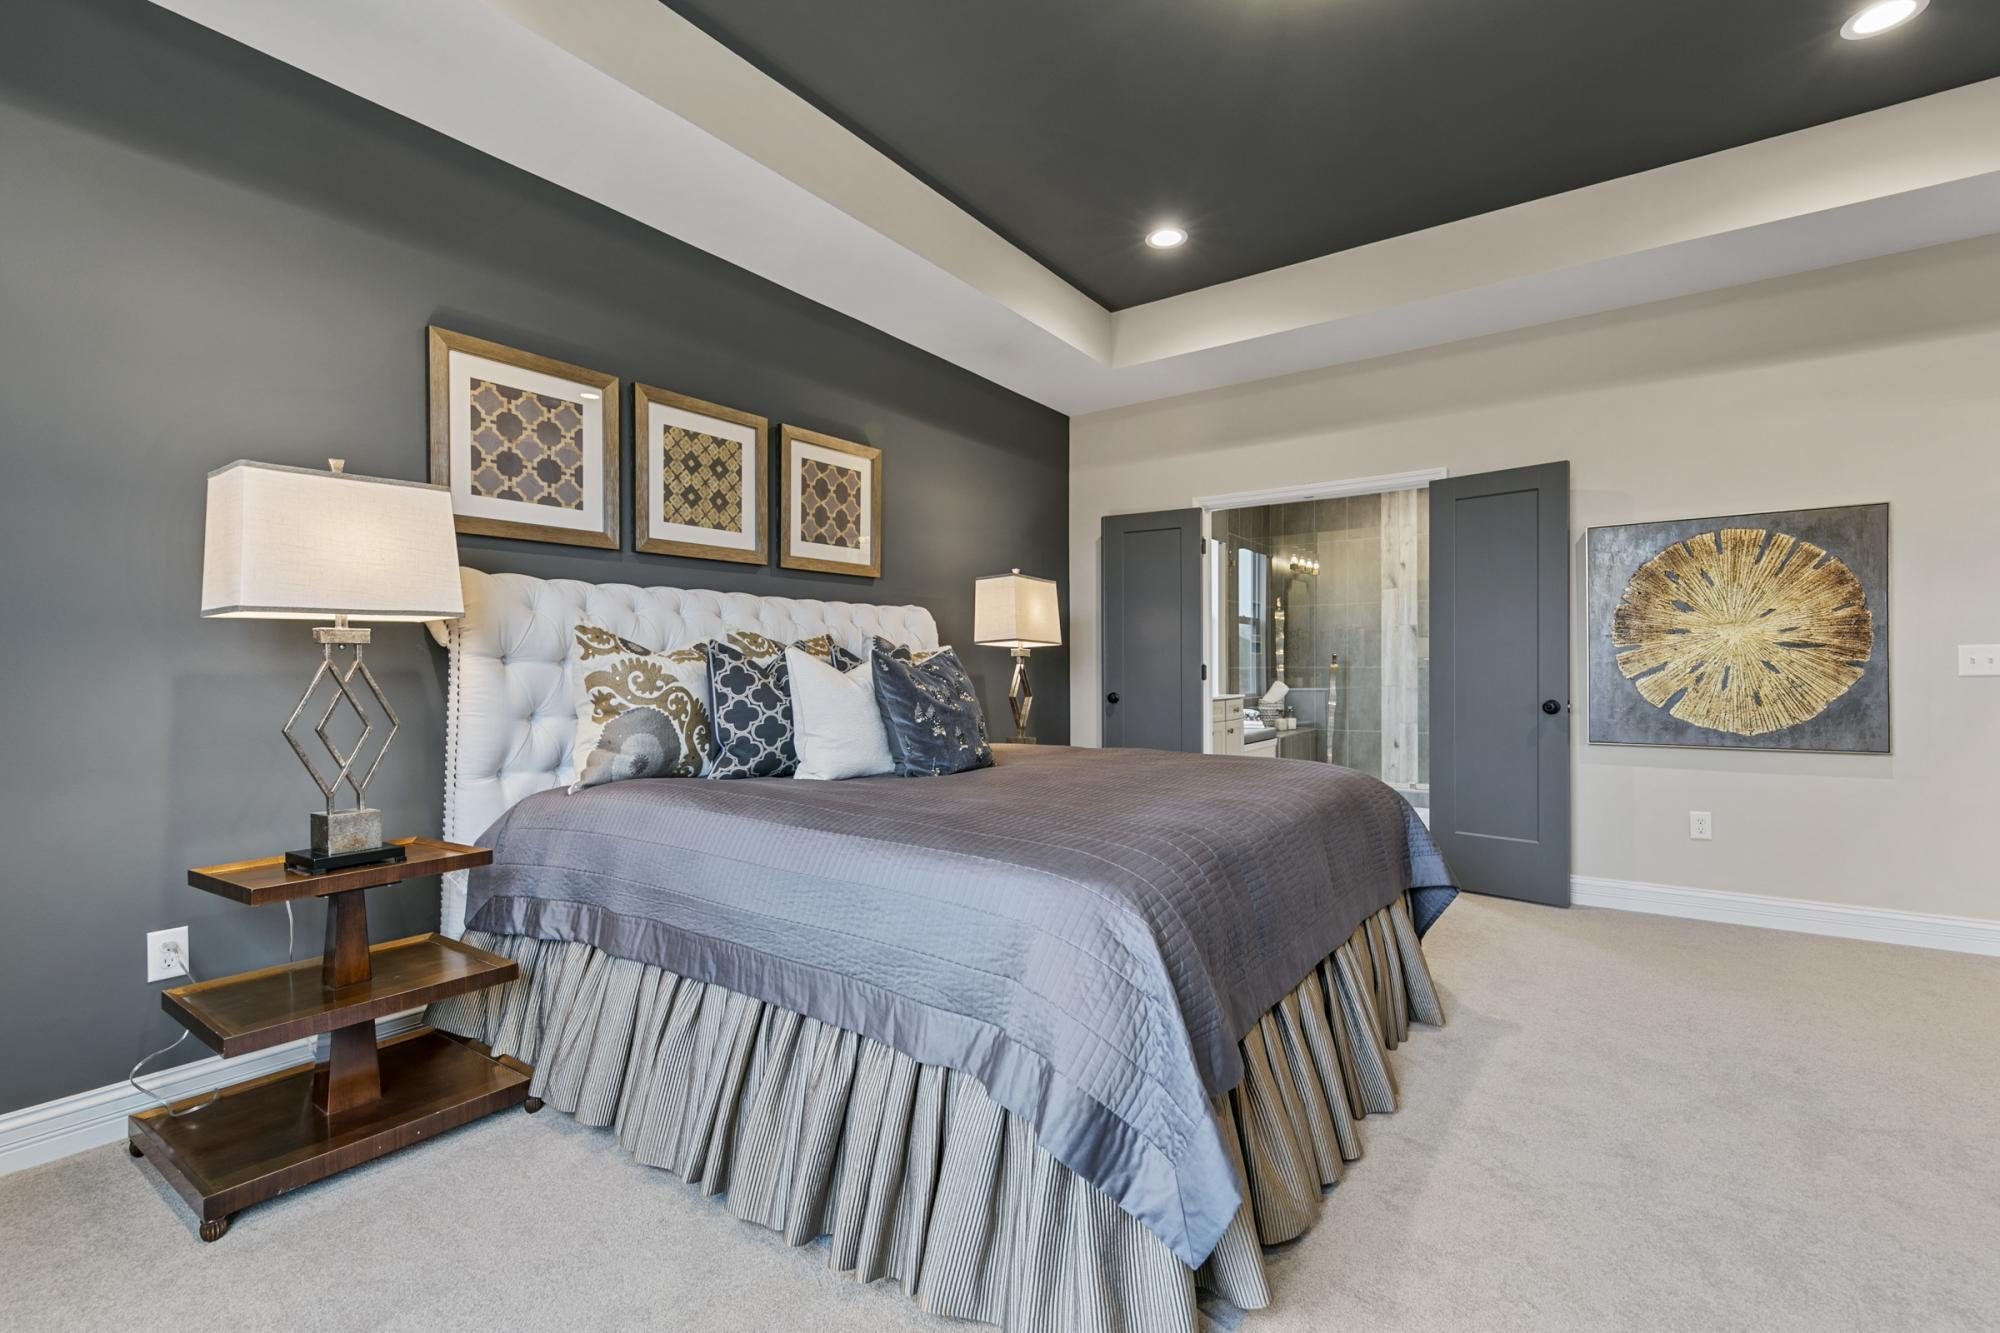 Bedroom featured in the LaSalle By McKelvey Homes in St. Louis, MO